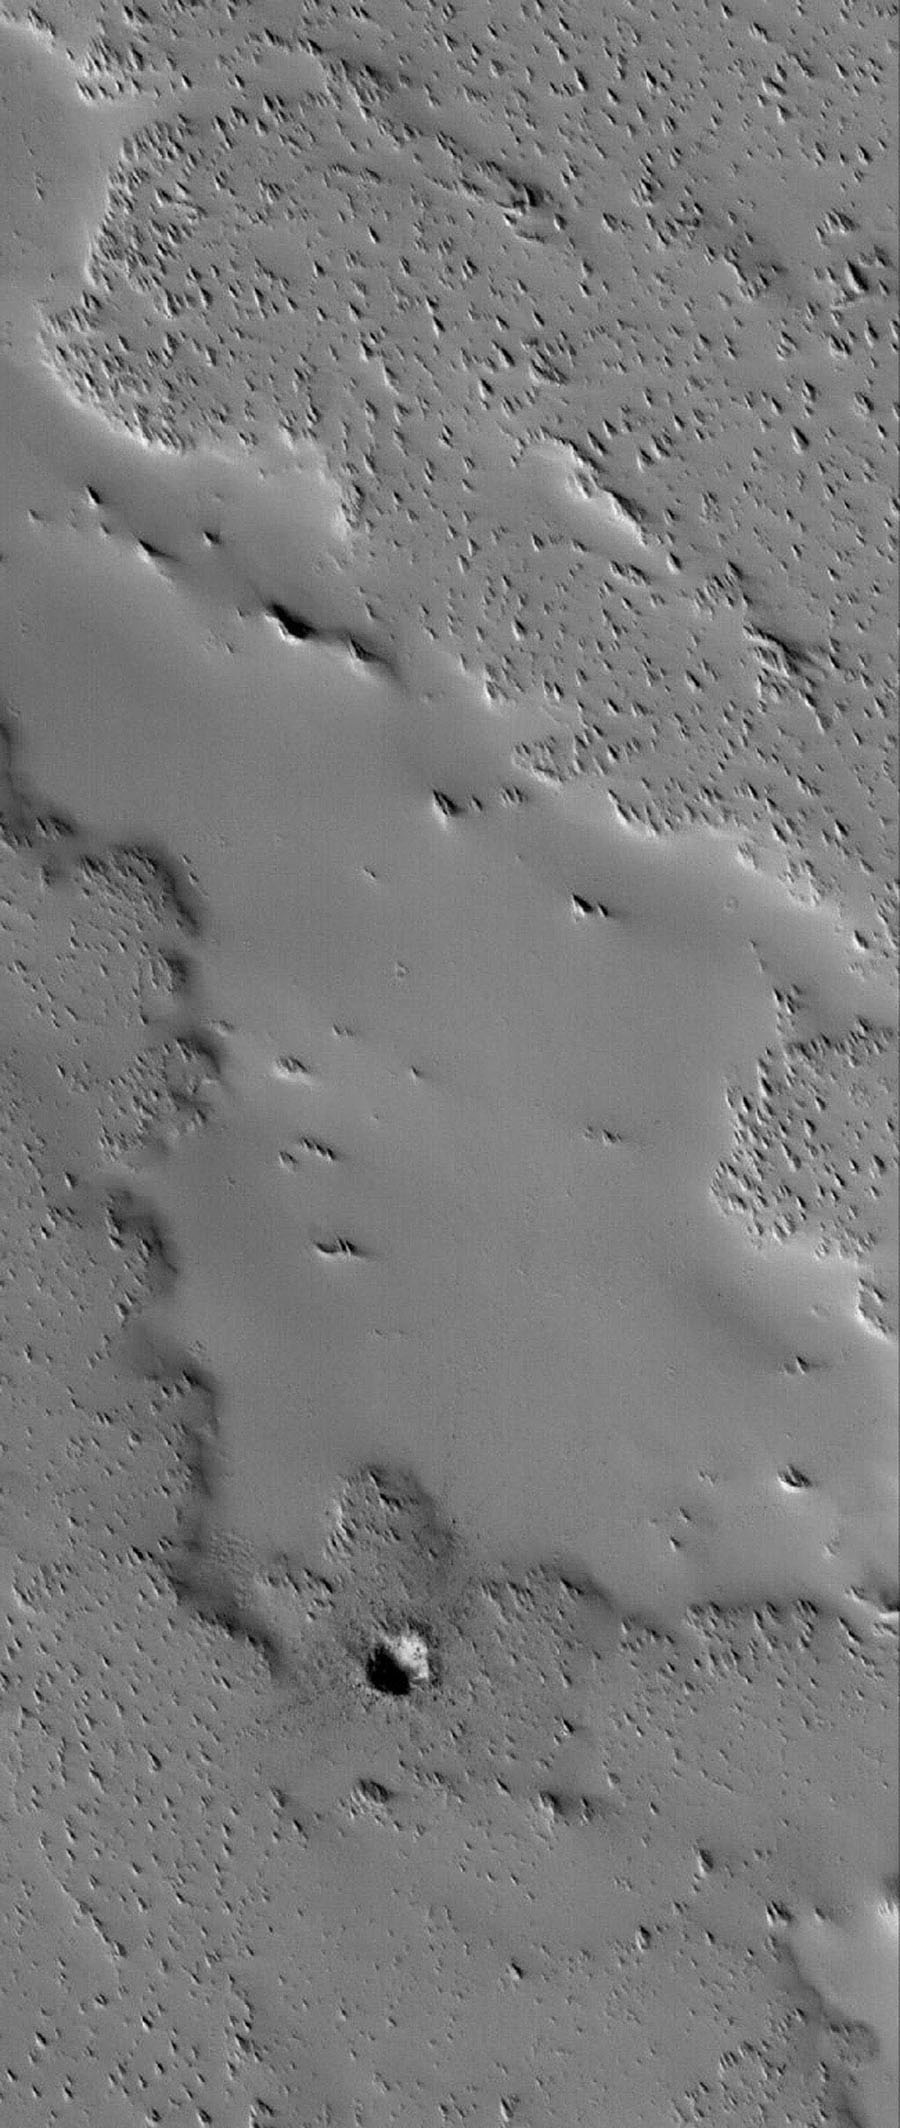 NASA's Mars Global Surveyor shows an ancient lava flow surface near the volcano, Ascraeus Mons on Mars. The volcanic material has been completely covered by thick accumulations of dust.